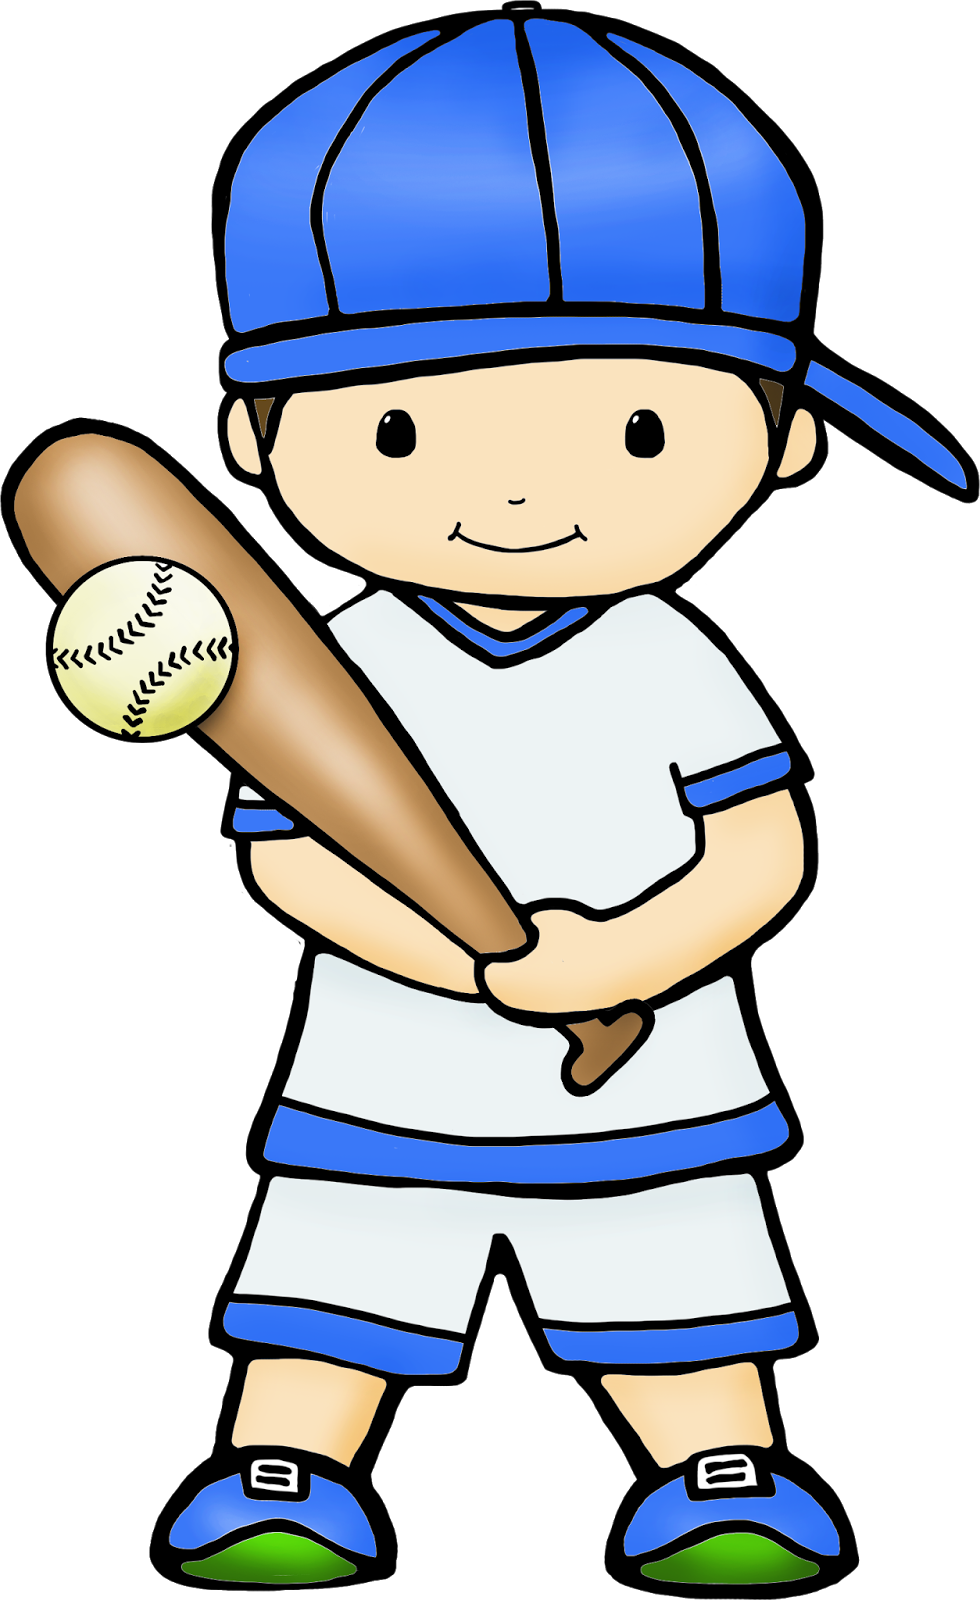 Boy playing baseball clipart vector royalty free stock SLAM through the SCHOOL YEAR with FUN GAMES that TEACH CONCEPTS - vector royalty free stock